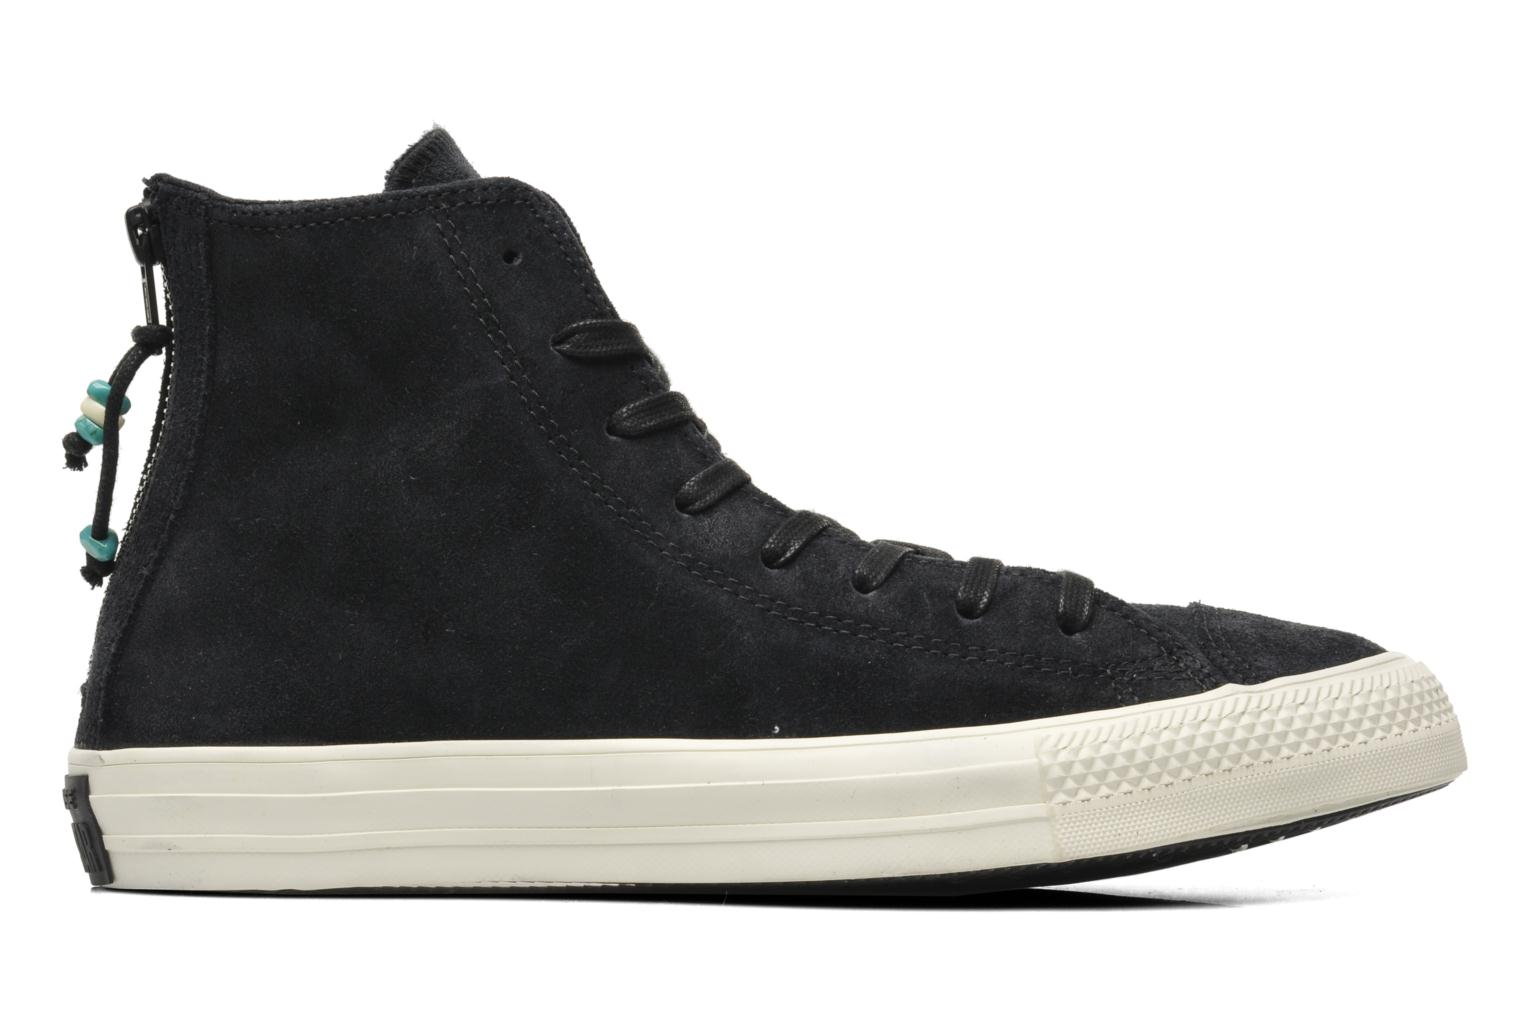 Baskets Converse Chuck Taylor Burnished Suede Double Zip Hi M Noir vue derrière